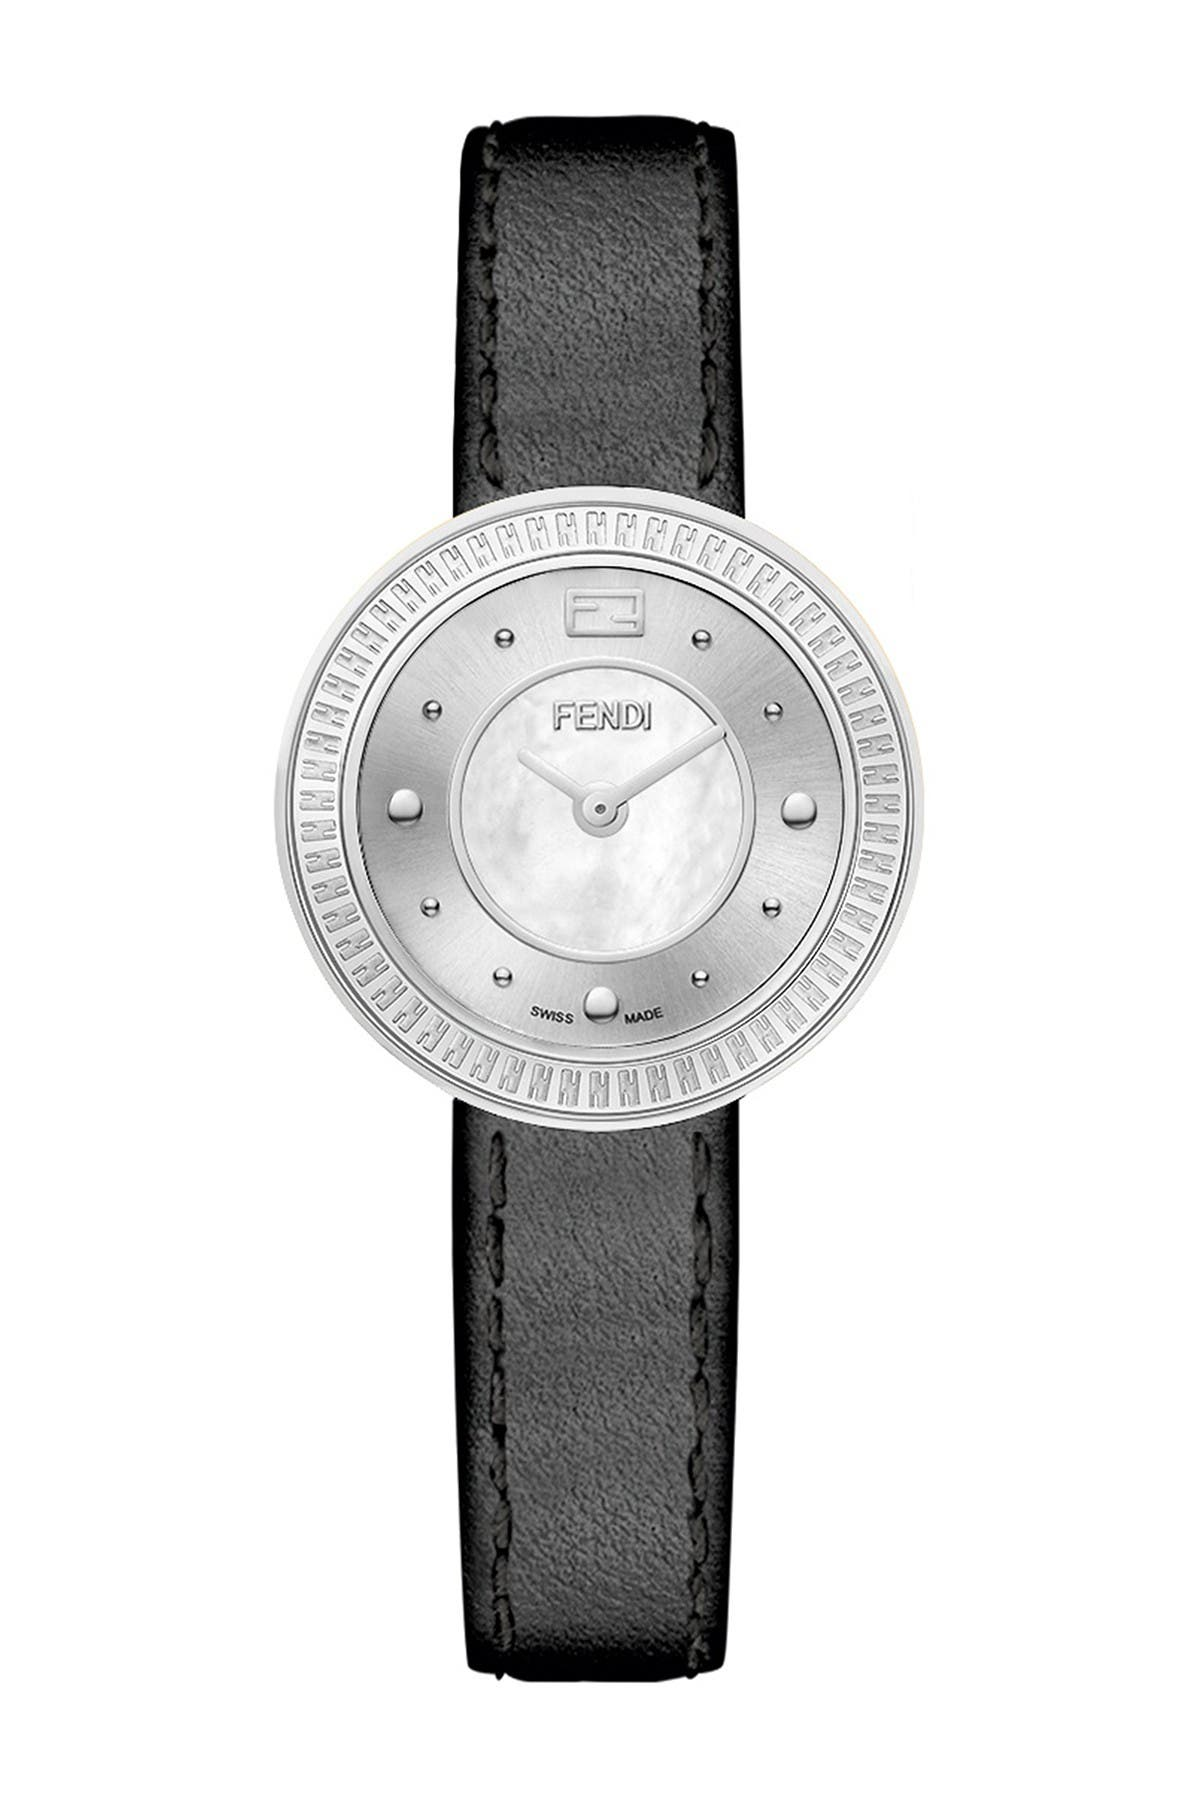 Image of FENDI Women's Fendi My Way Leather Strap Watch, 28mm